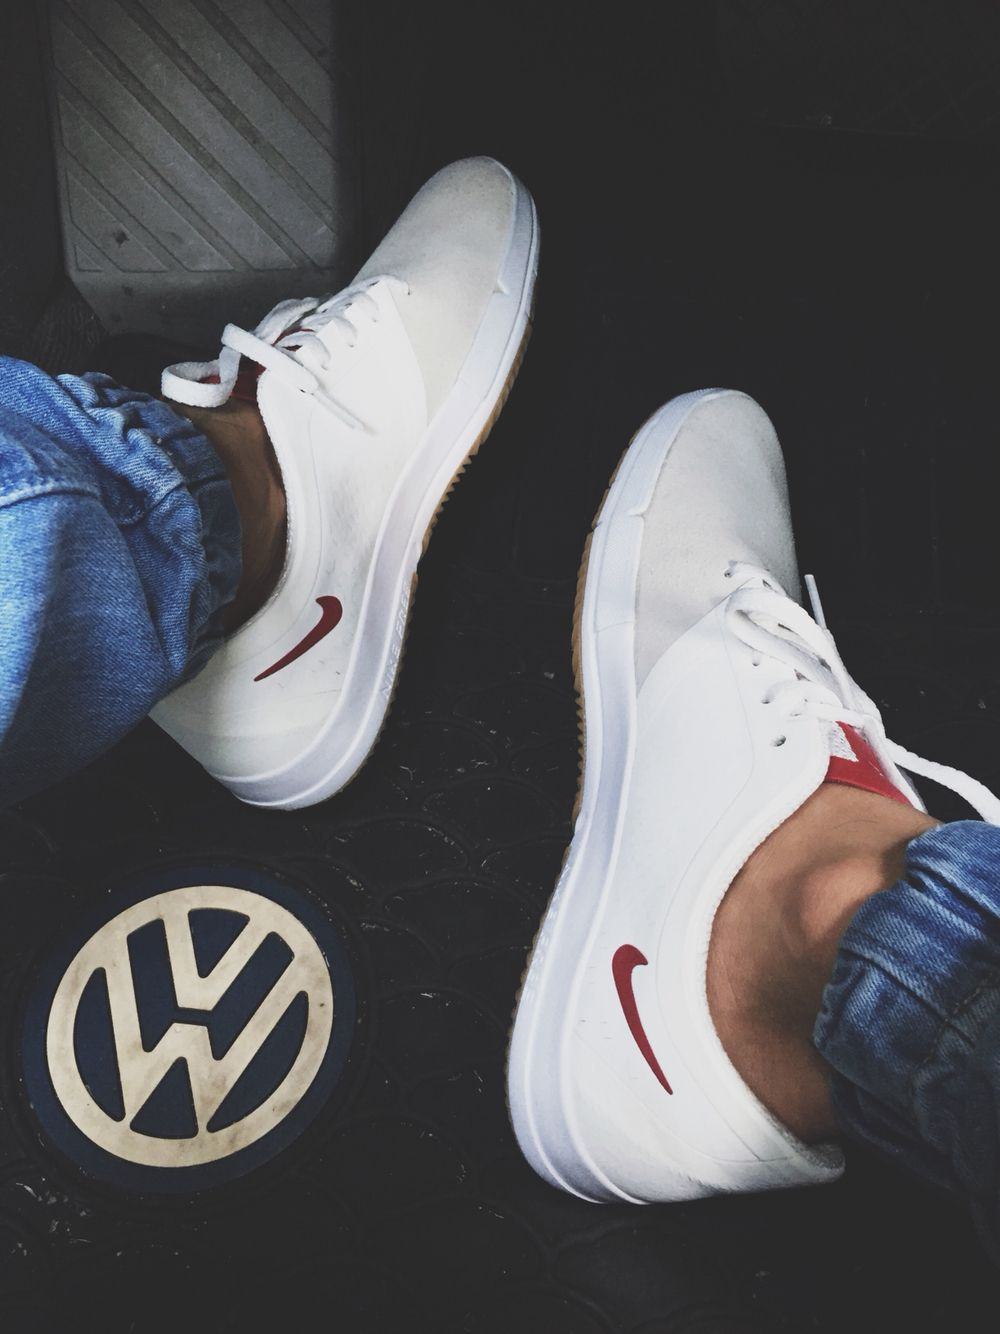 6766ff5d5011 Nike Free SB Nano Summits are such comfortable shoes Shout out to Volkswagen